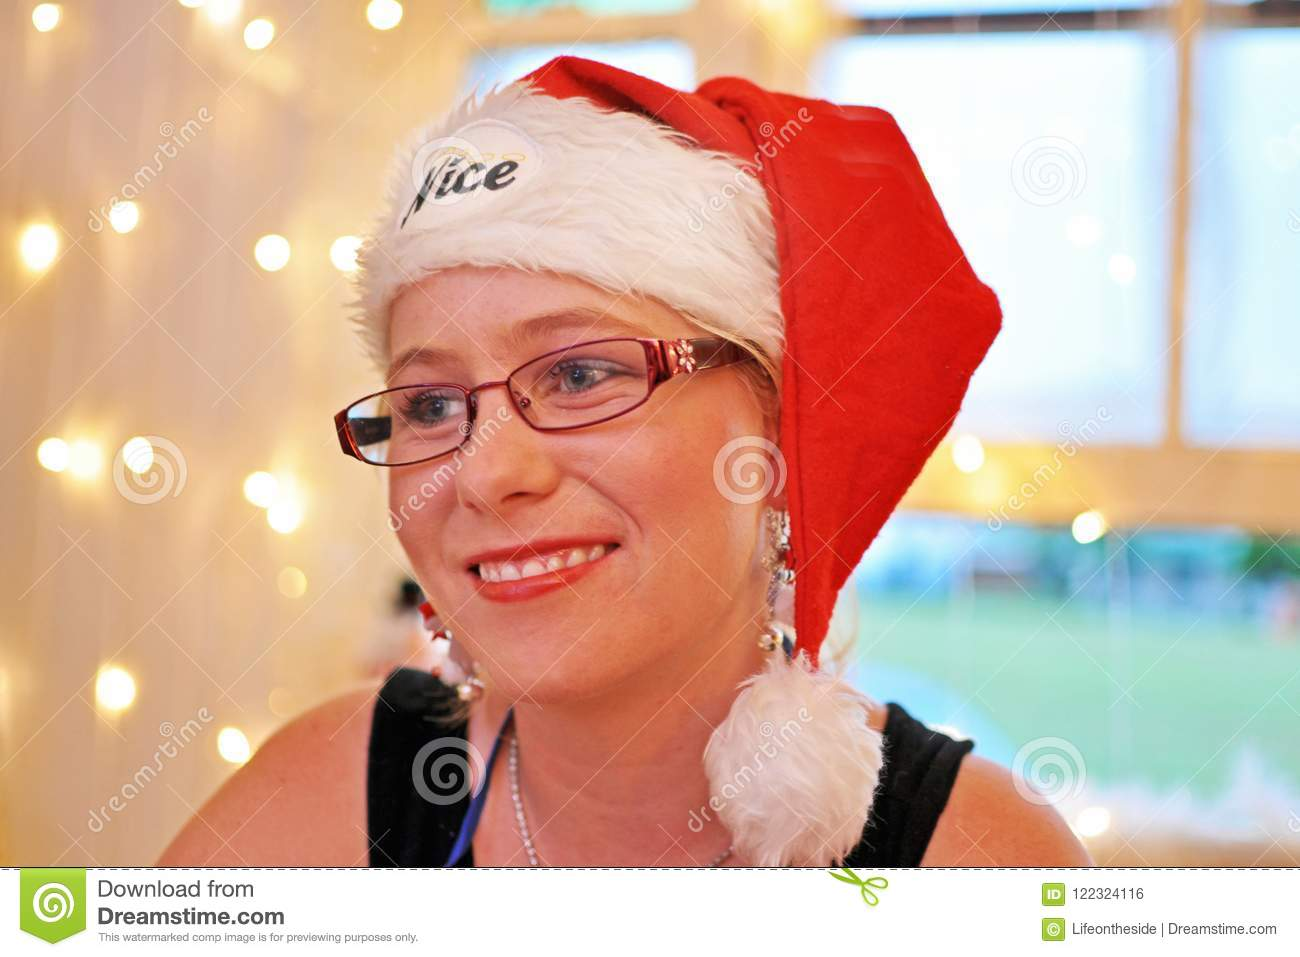 Portrait soft mood expression young joyful smiling woman Christmas time